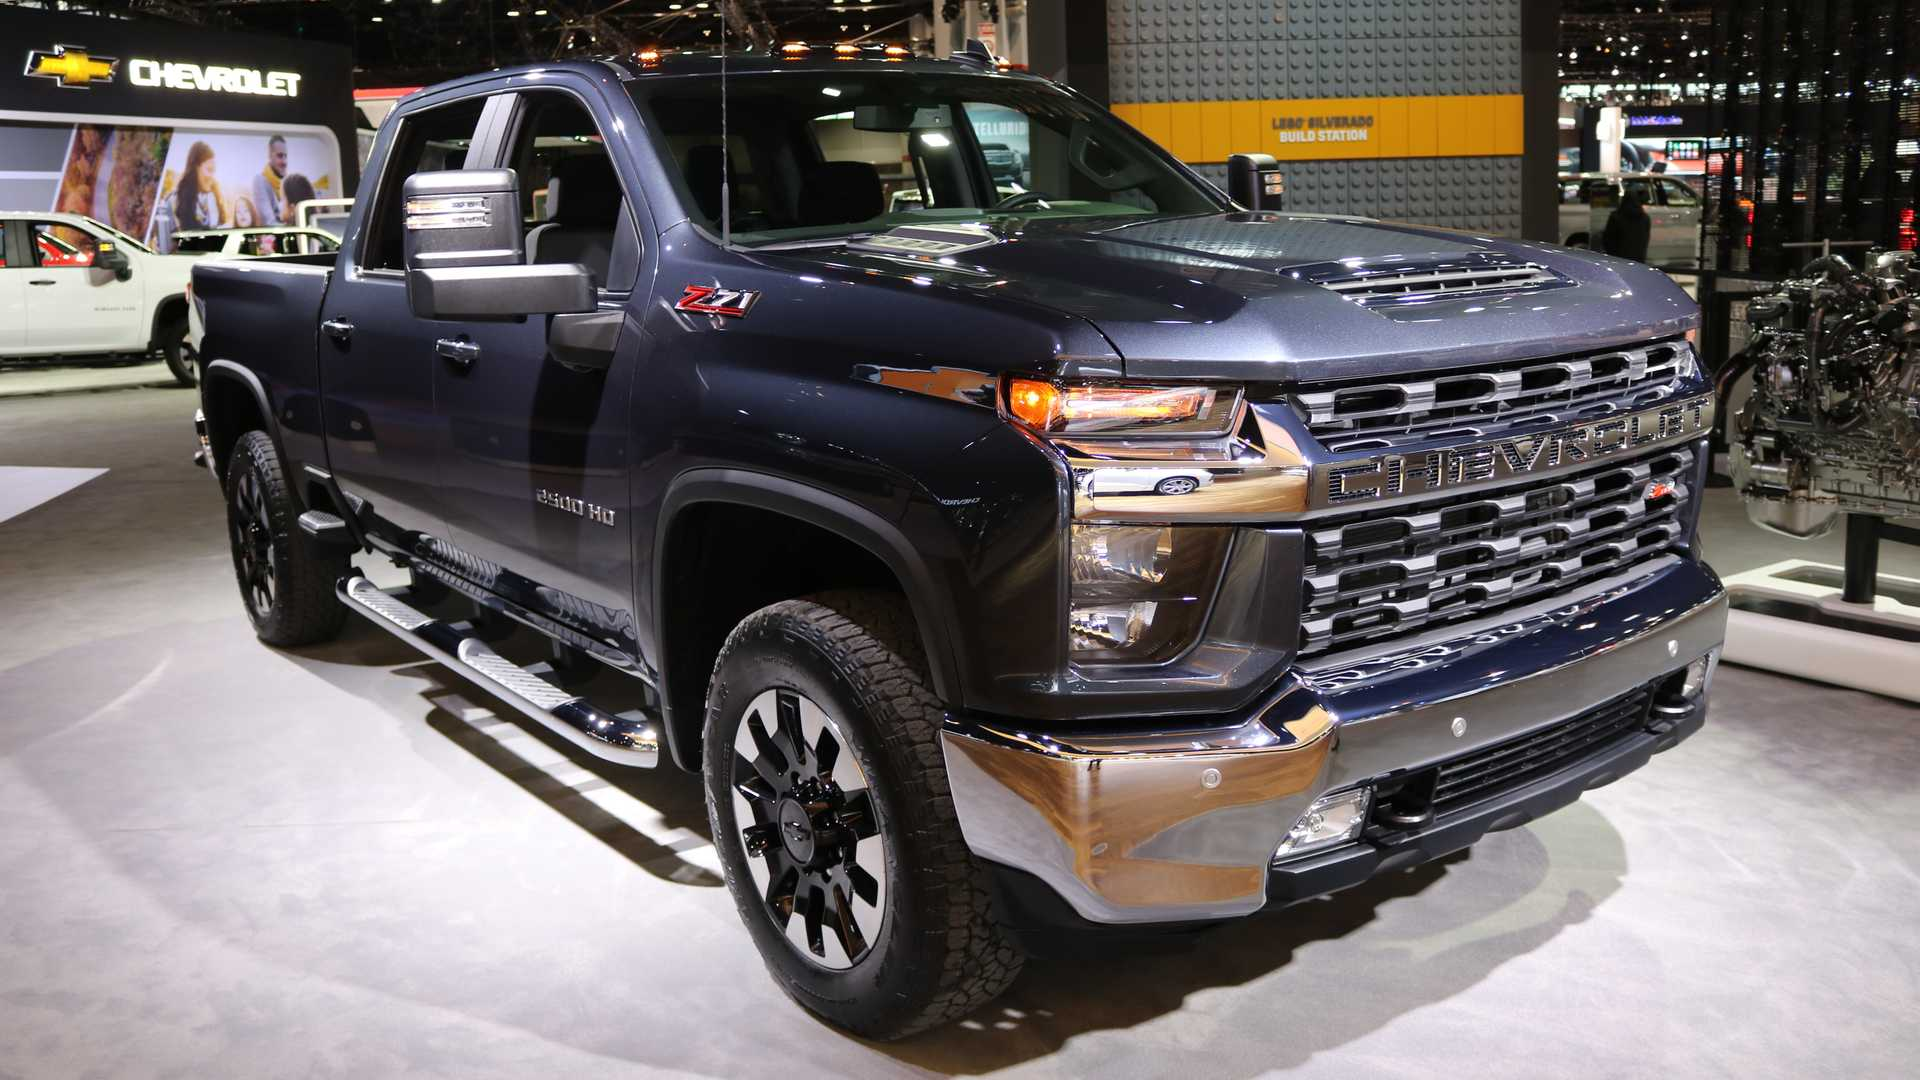 28 All New 2020 Chevy Silverado Hd Performance